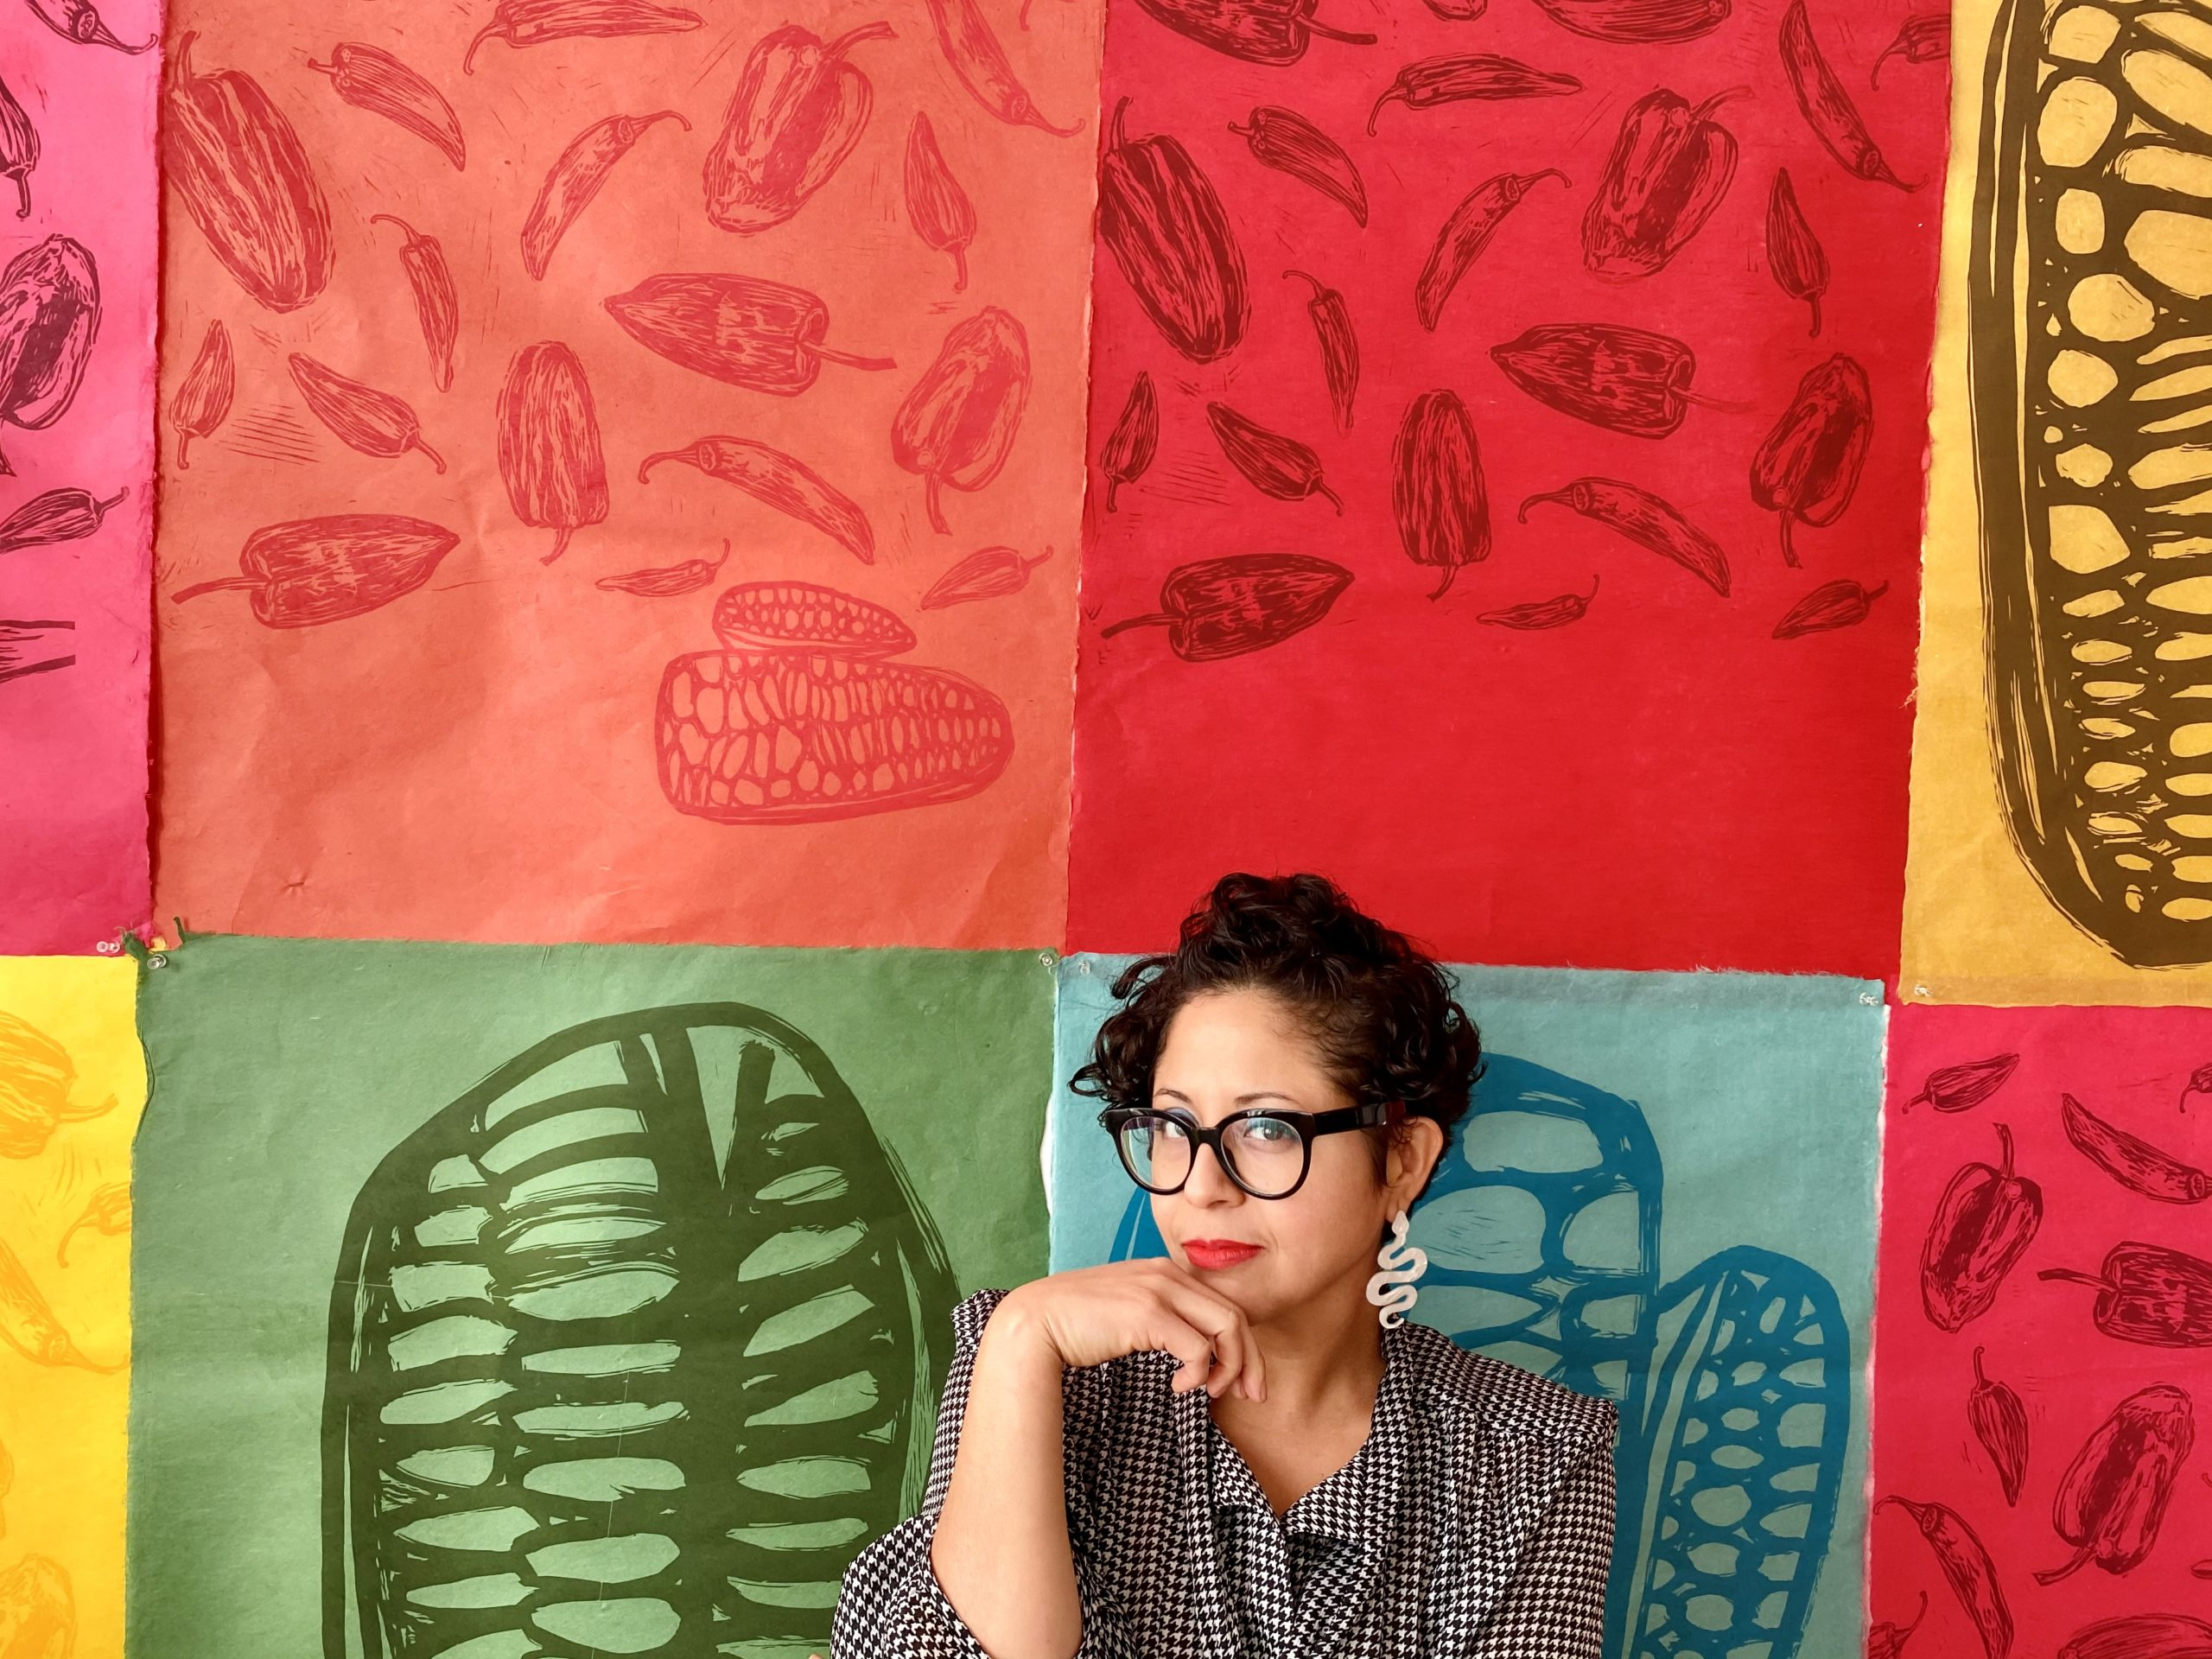 Headshot of Favianna Rodriguez in front of colorful artwork.